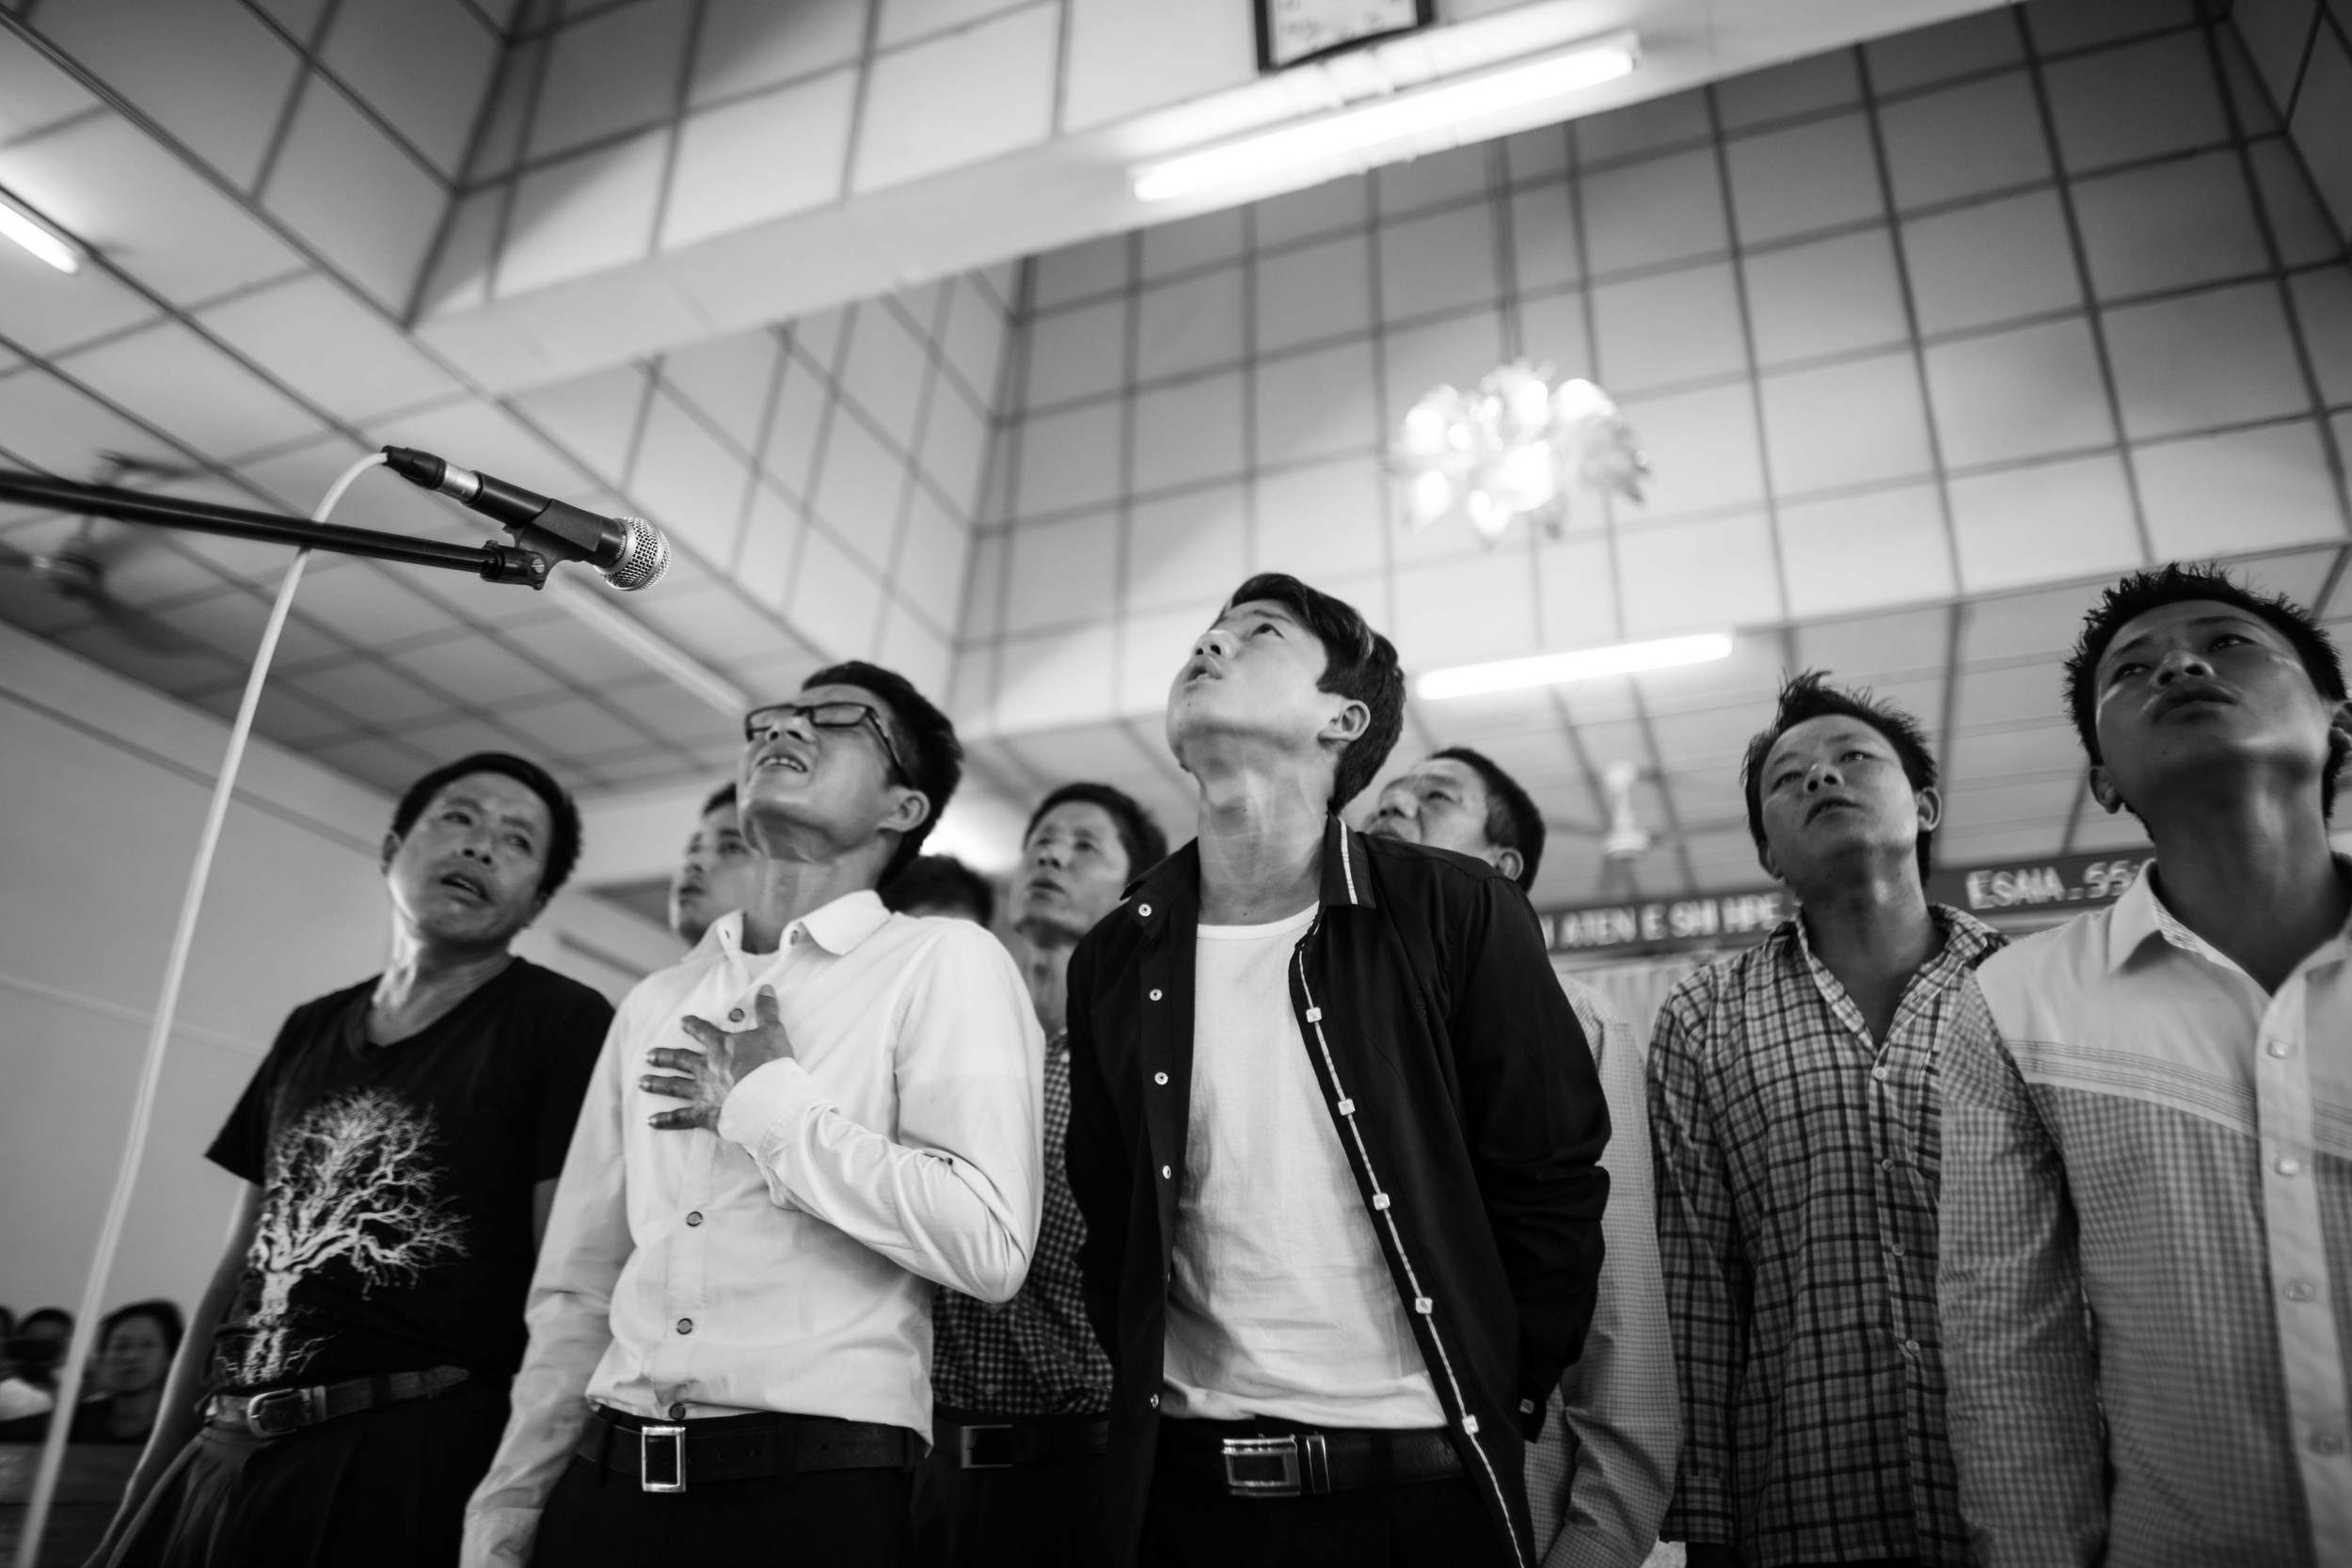 After the first week of confinement, the students at the YCC rehab center are allowed outside the centerand encouraged to attend church in town. Today, they are performing a few songs for the community at church.